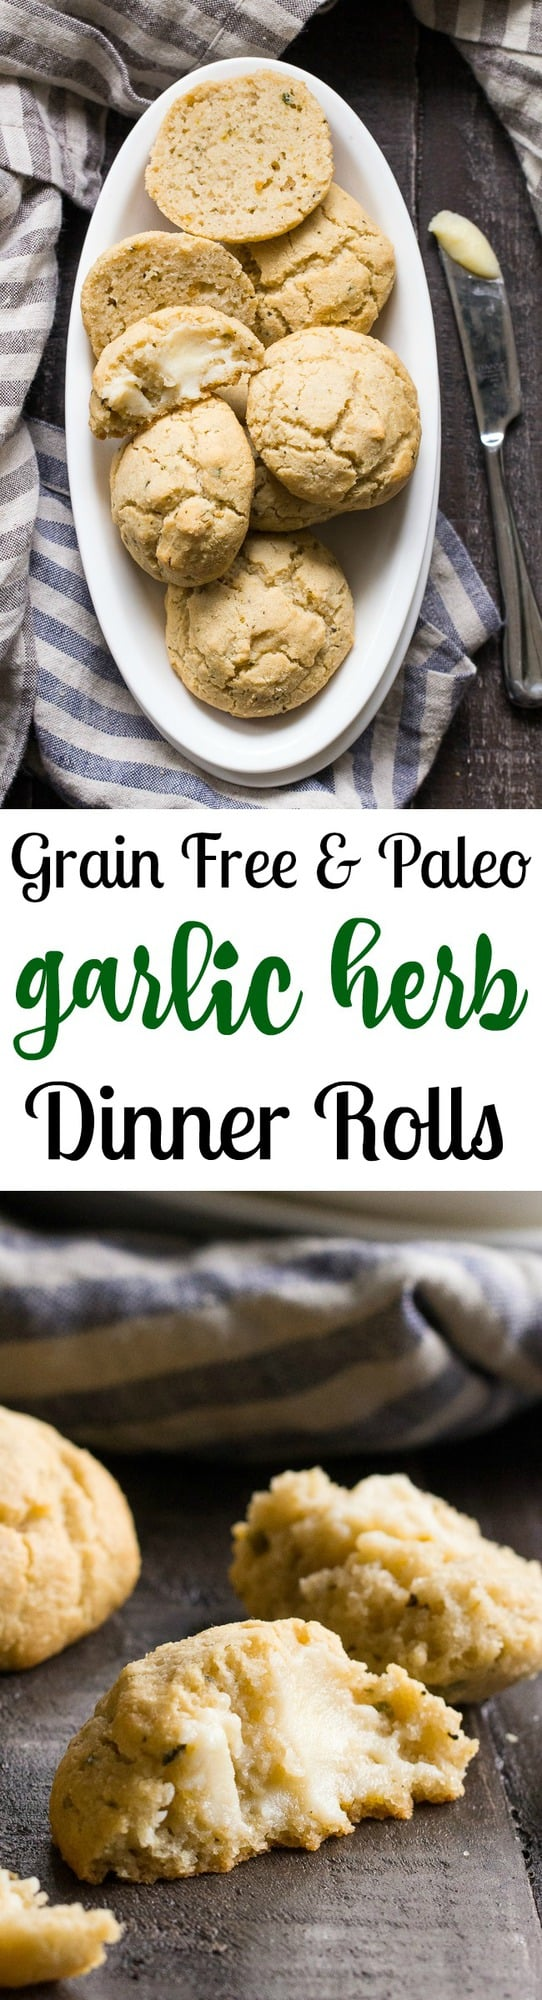 These Garlic Herb Paleo Dinner Rolls come together in one bowl and couldn't be easier to make. Crisp on the outside, soft and doughy inside, they're irresistible and family approved! Grain free with dairy free options.